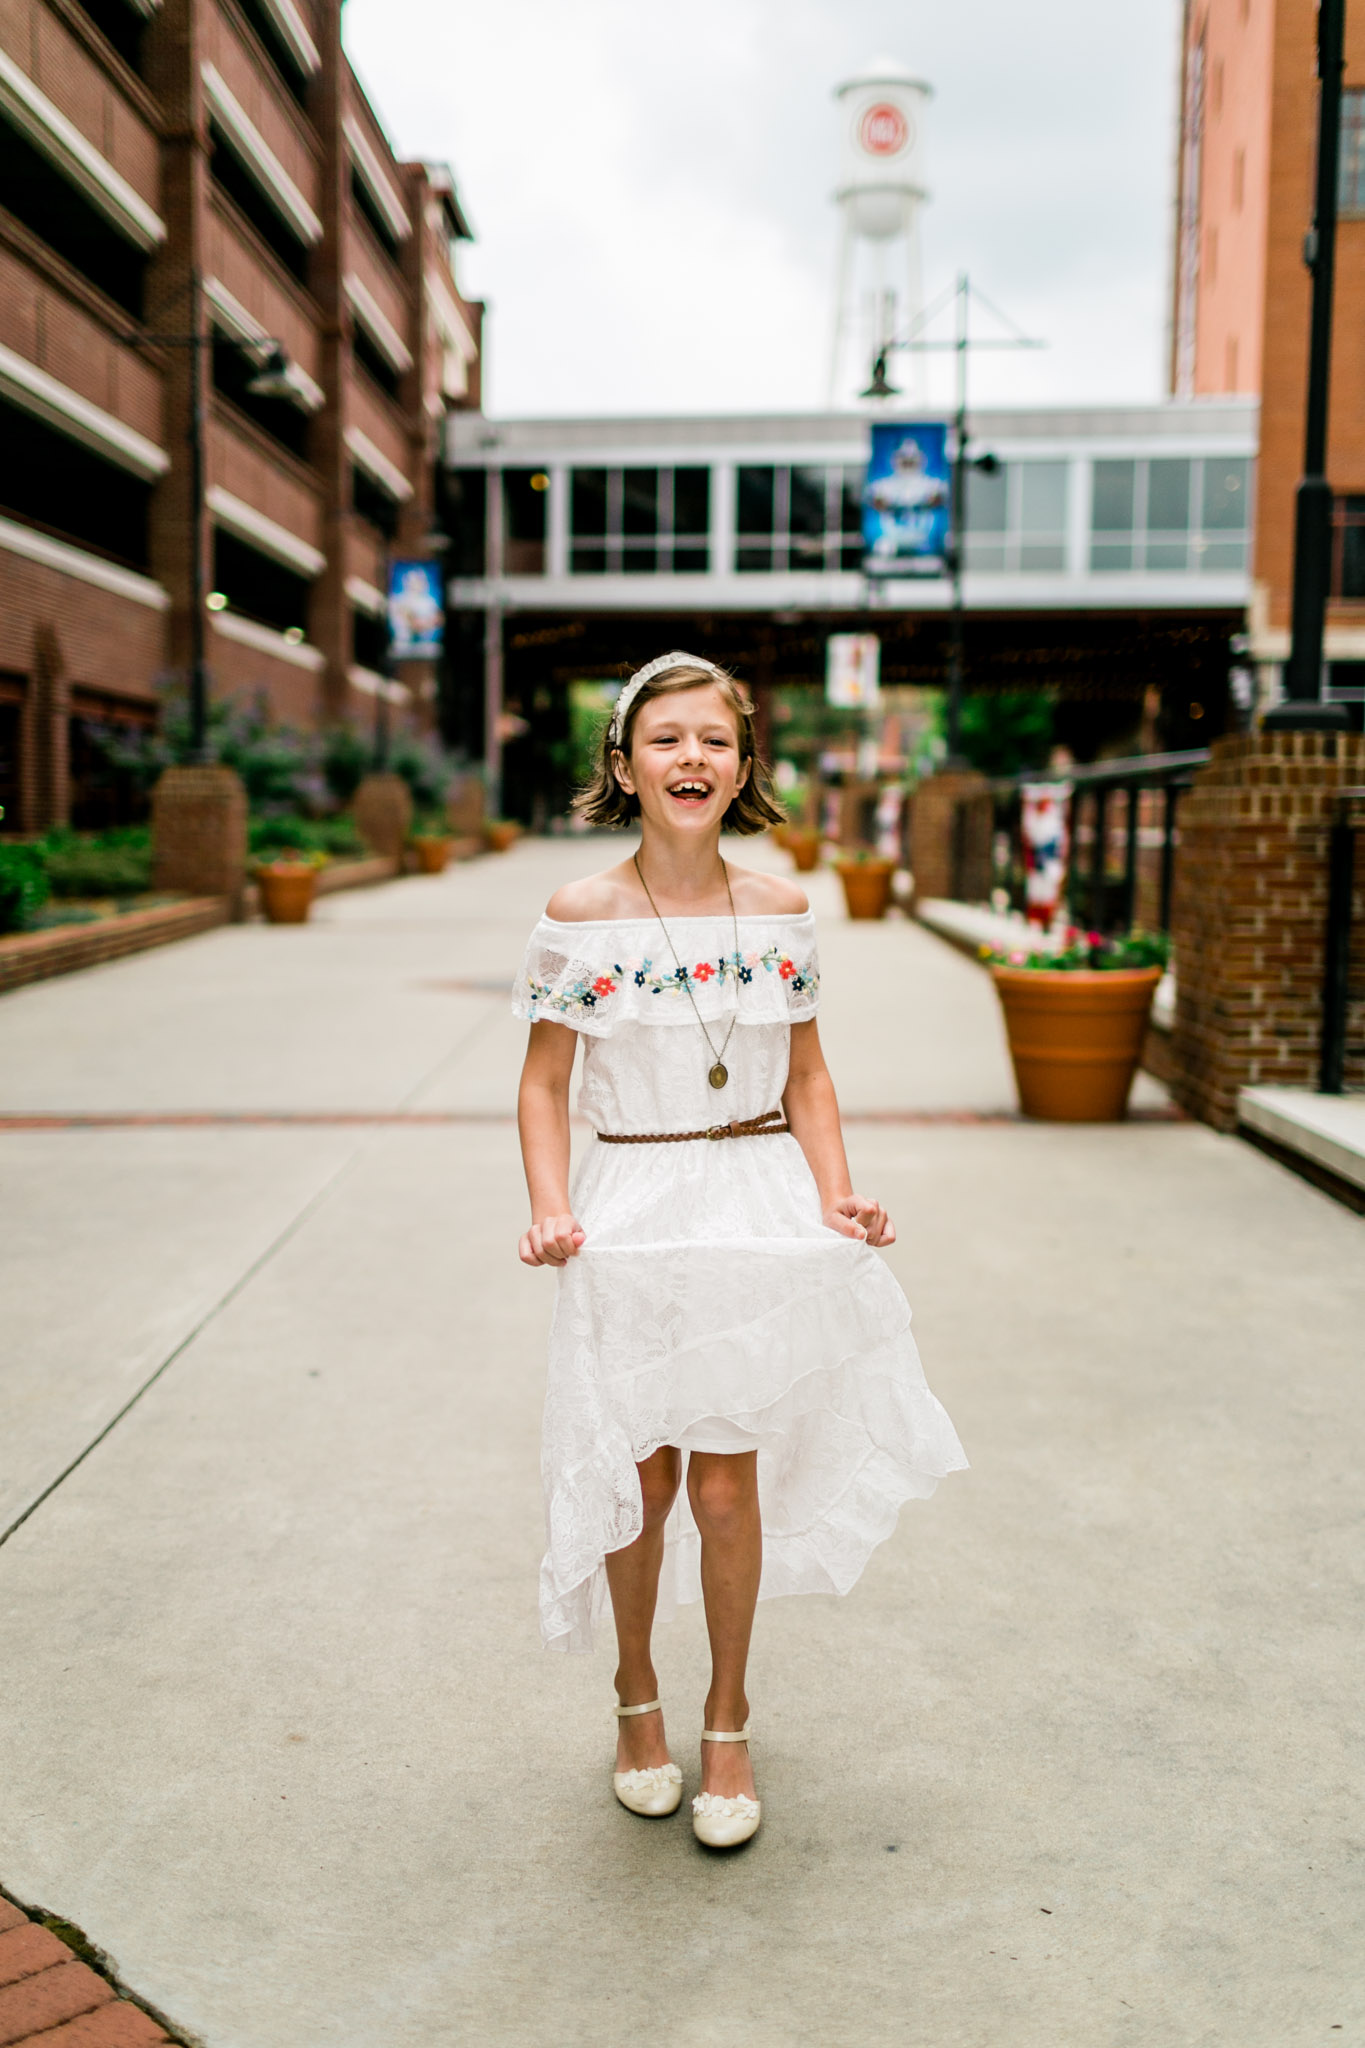 Durham Family Photographer | By G. Lin Photography | Portrait of girl twirling dress and laughing